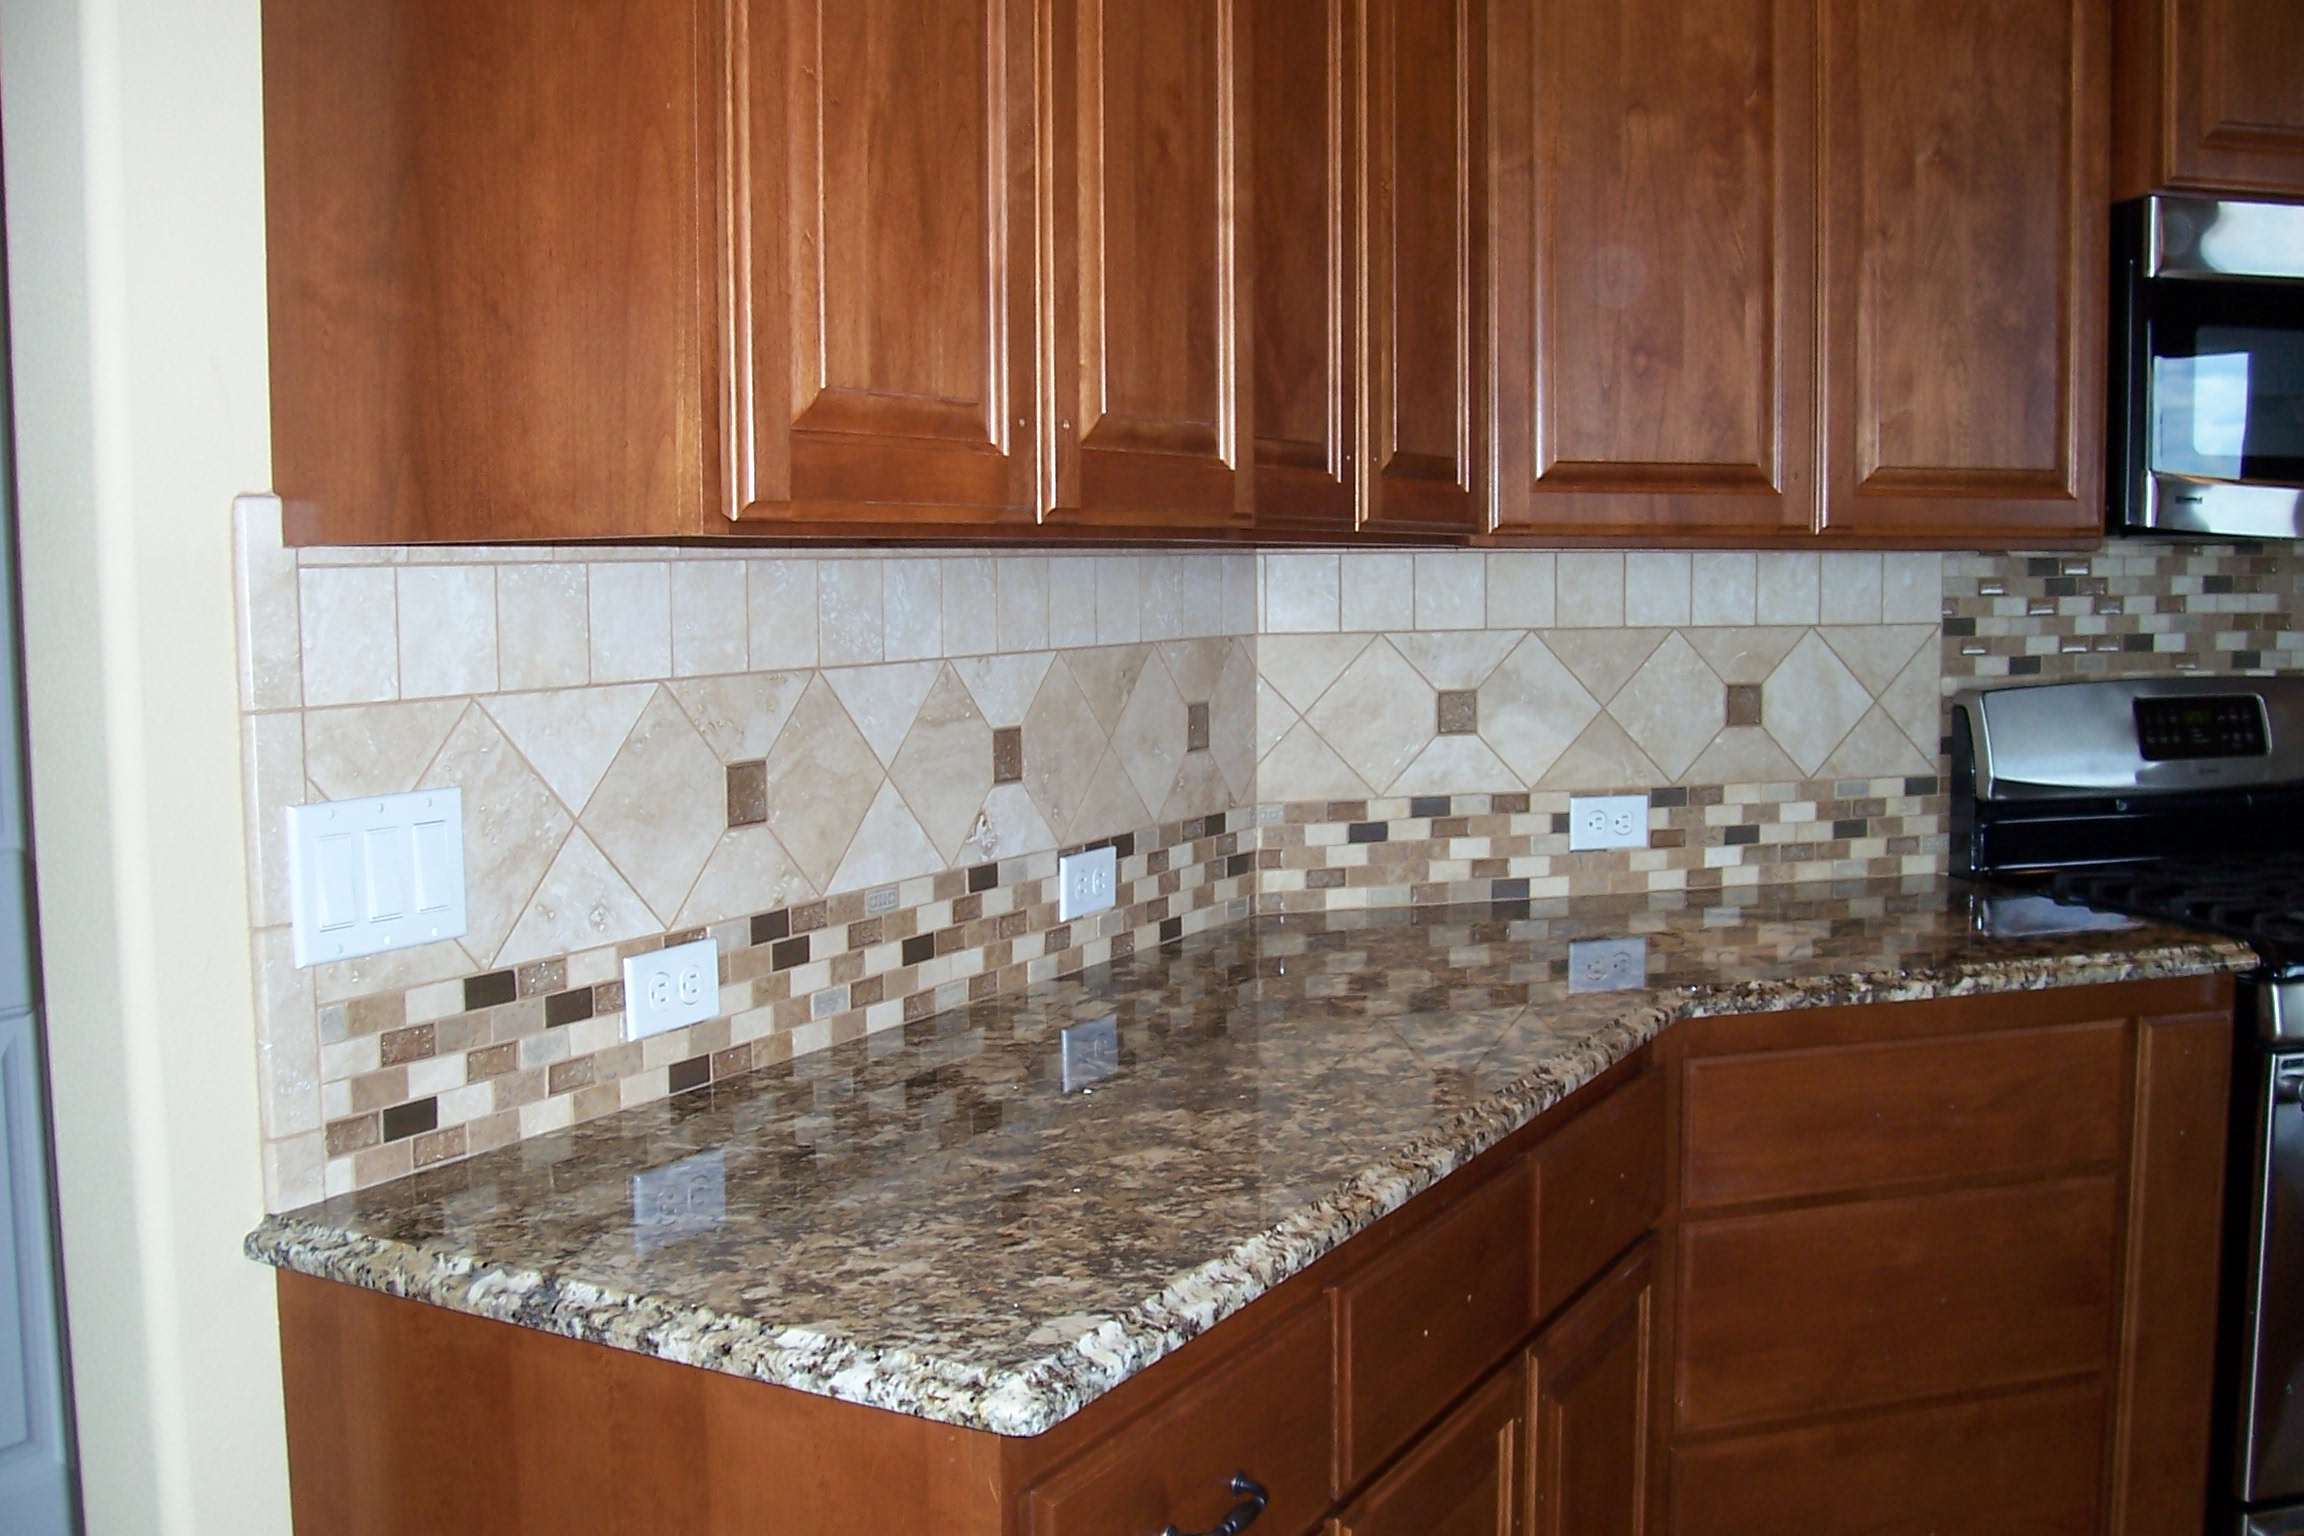 301 moved permanently Tile backsplash ideas for kitchen